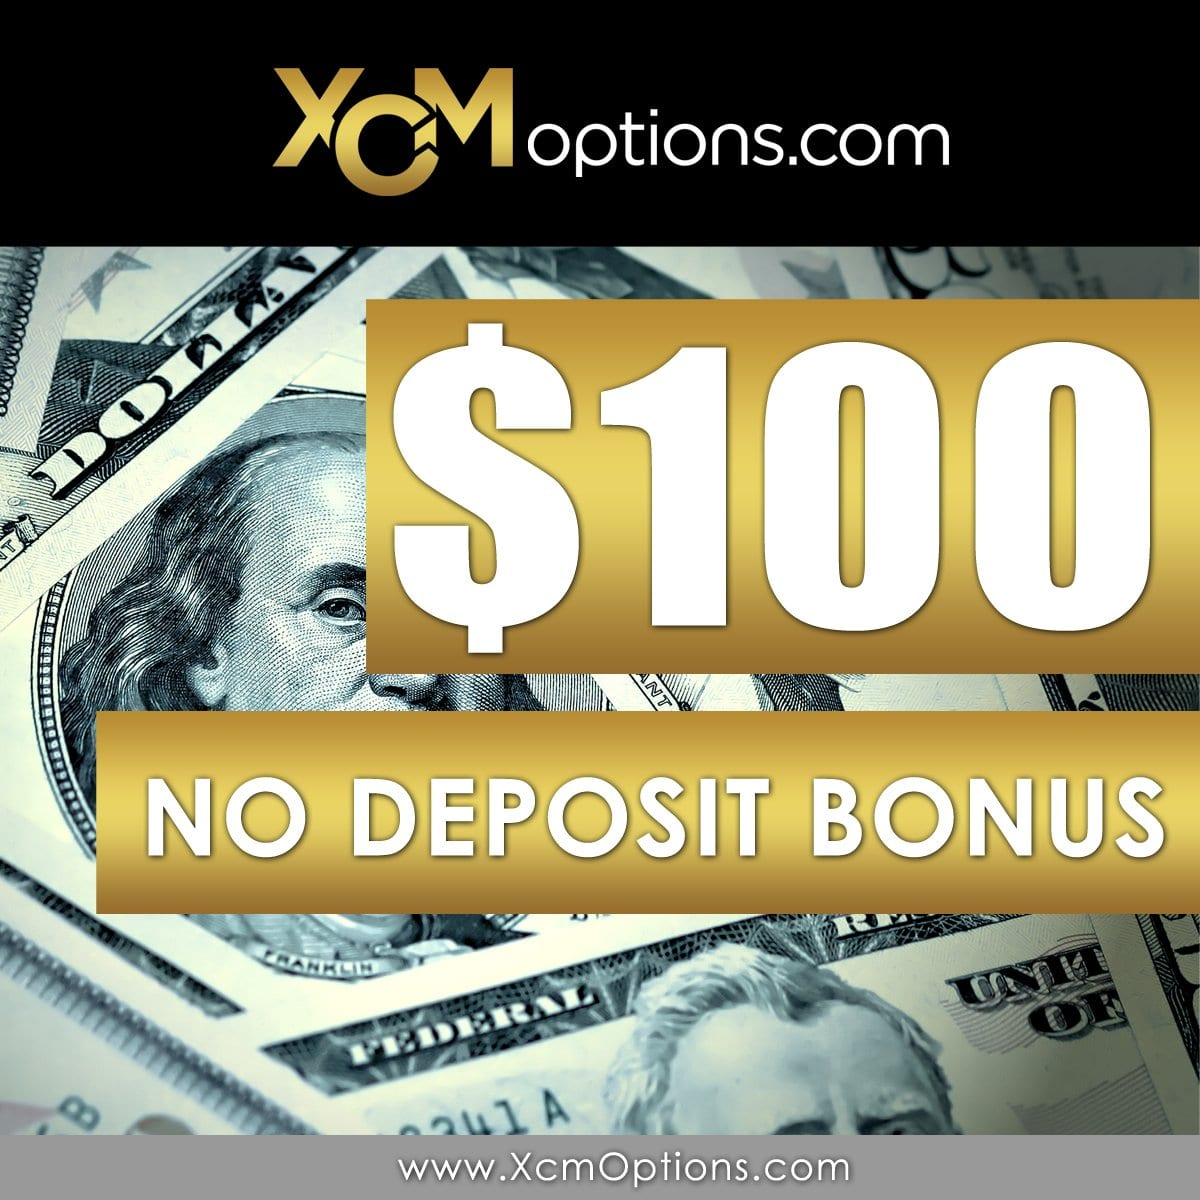 Online binary options brokers